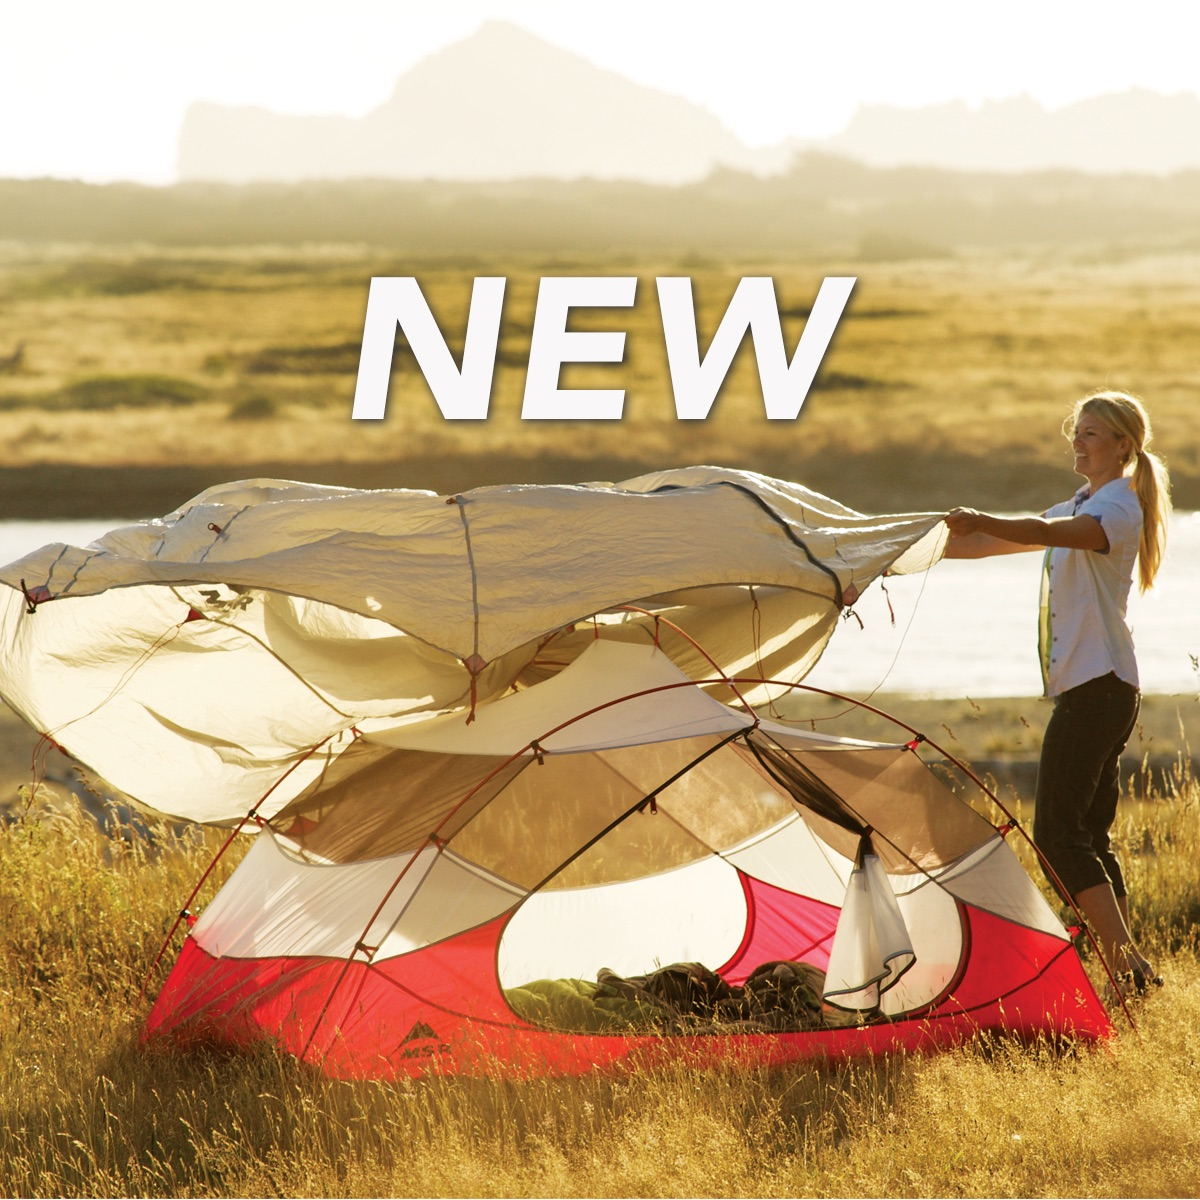 See what's new at LifeView Outdoors